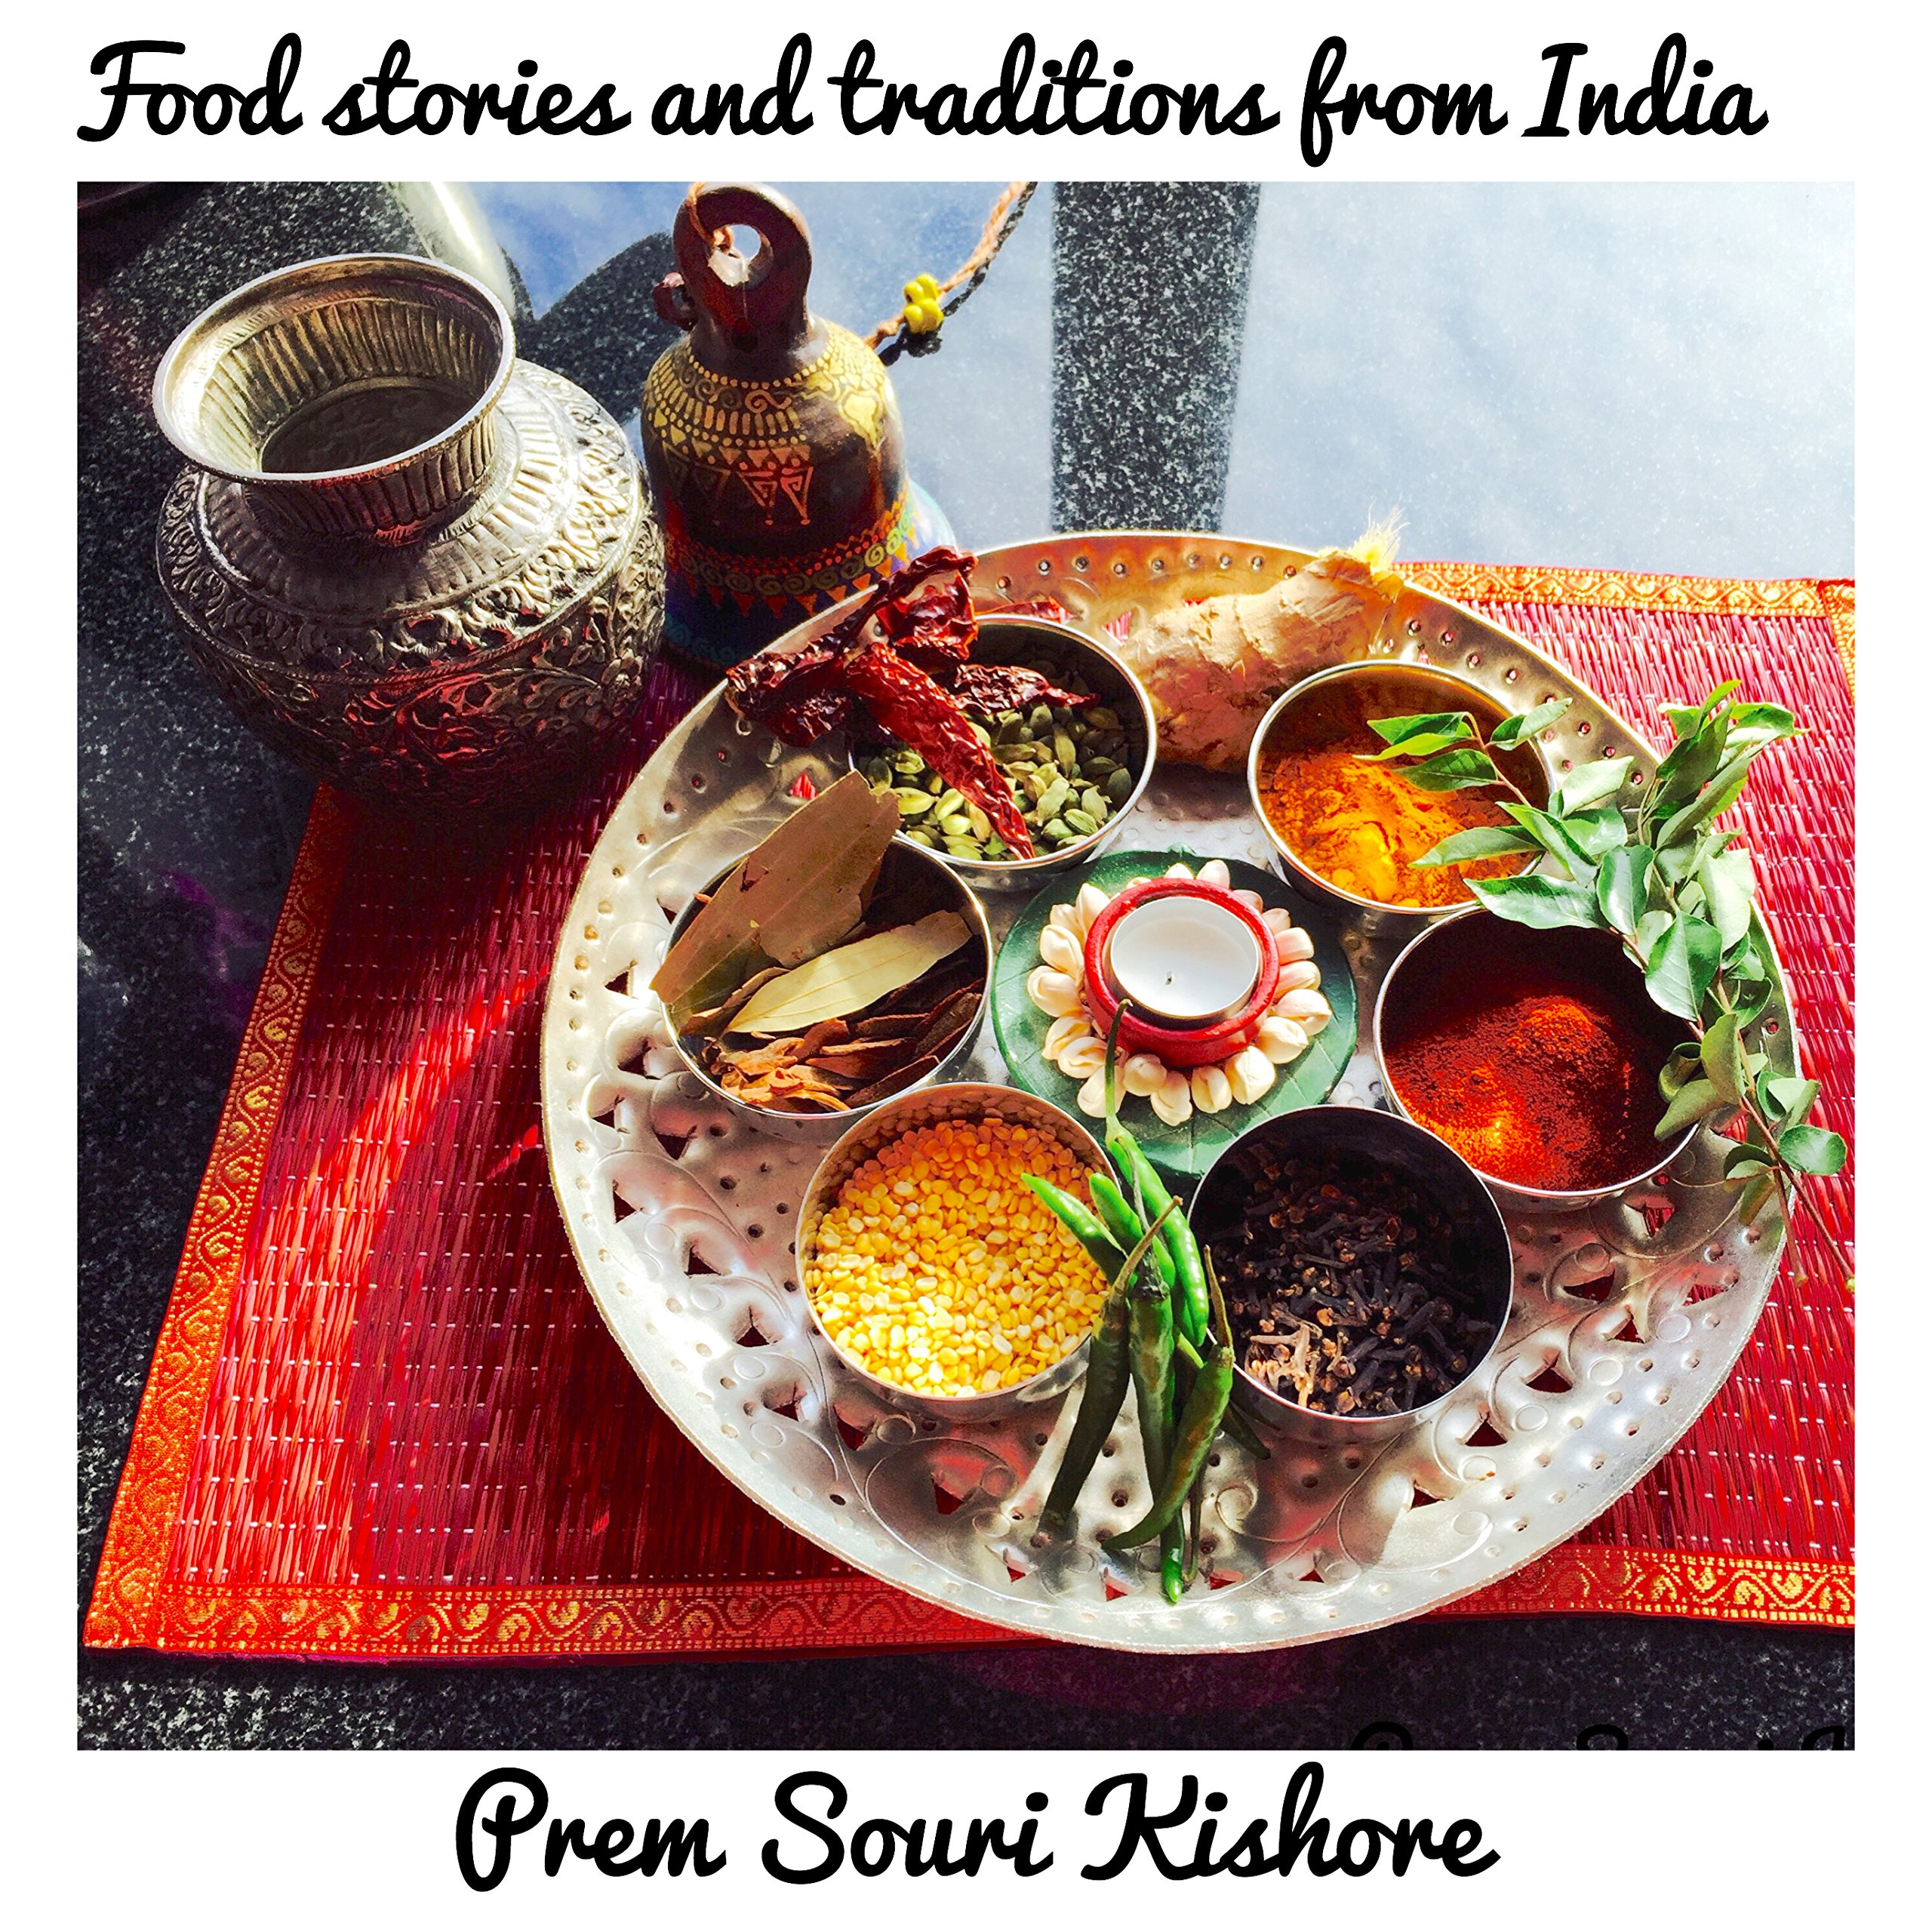 Food Stories, Rituals and Traditions of India: A Food Journey through India